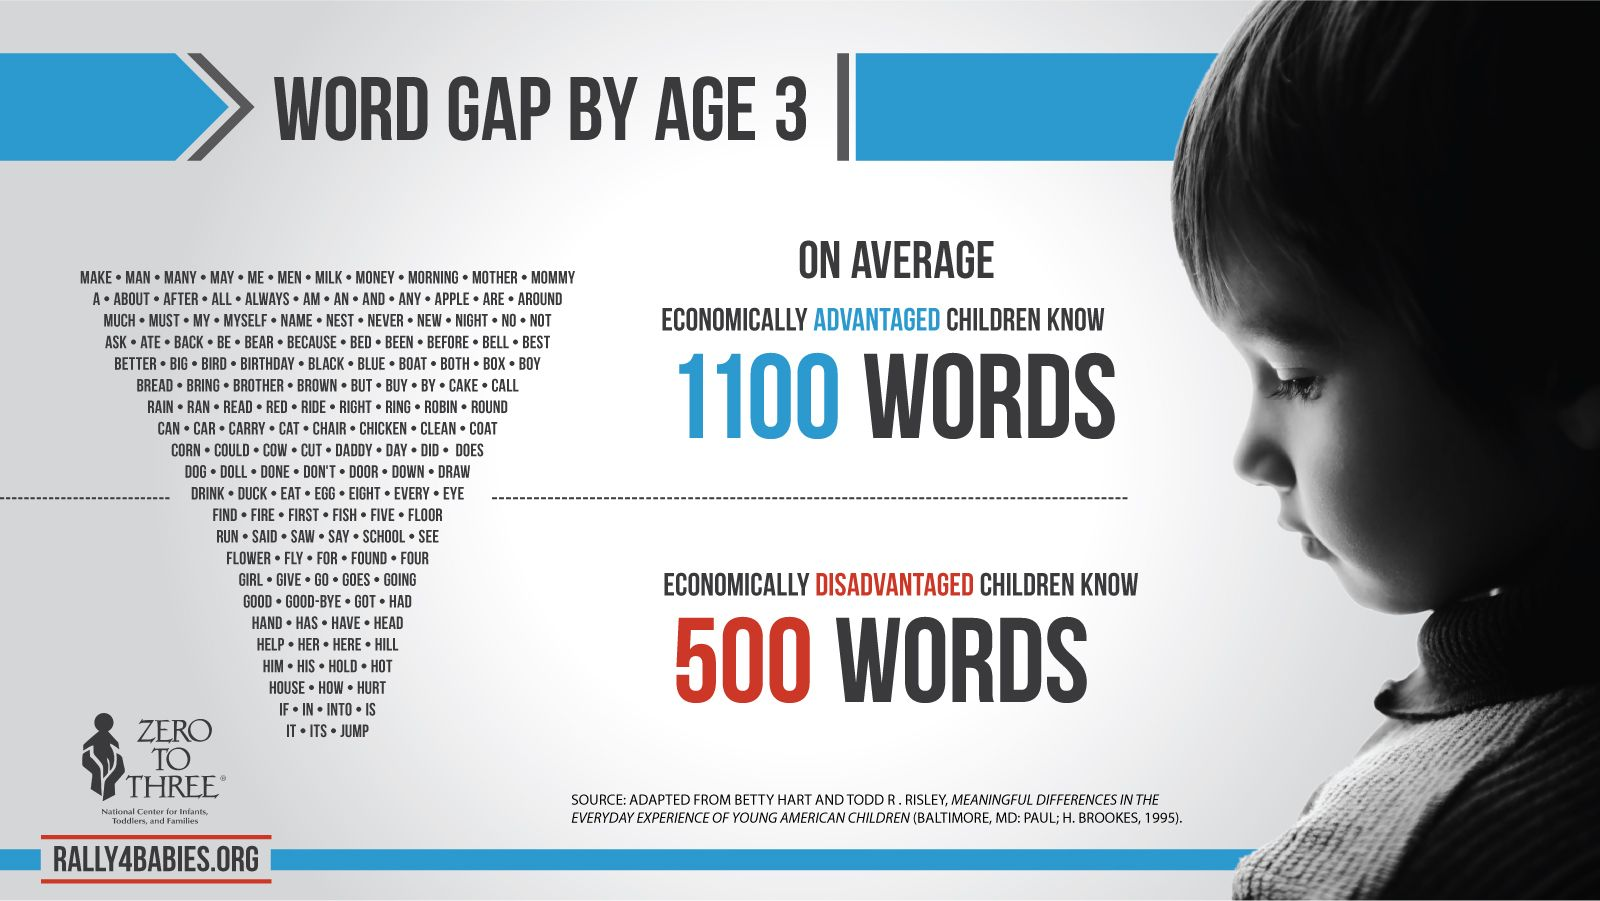 Explore How On Average Economically Disadvantaged Children Know 600 Fewer Words By Age 3